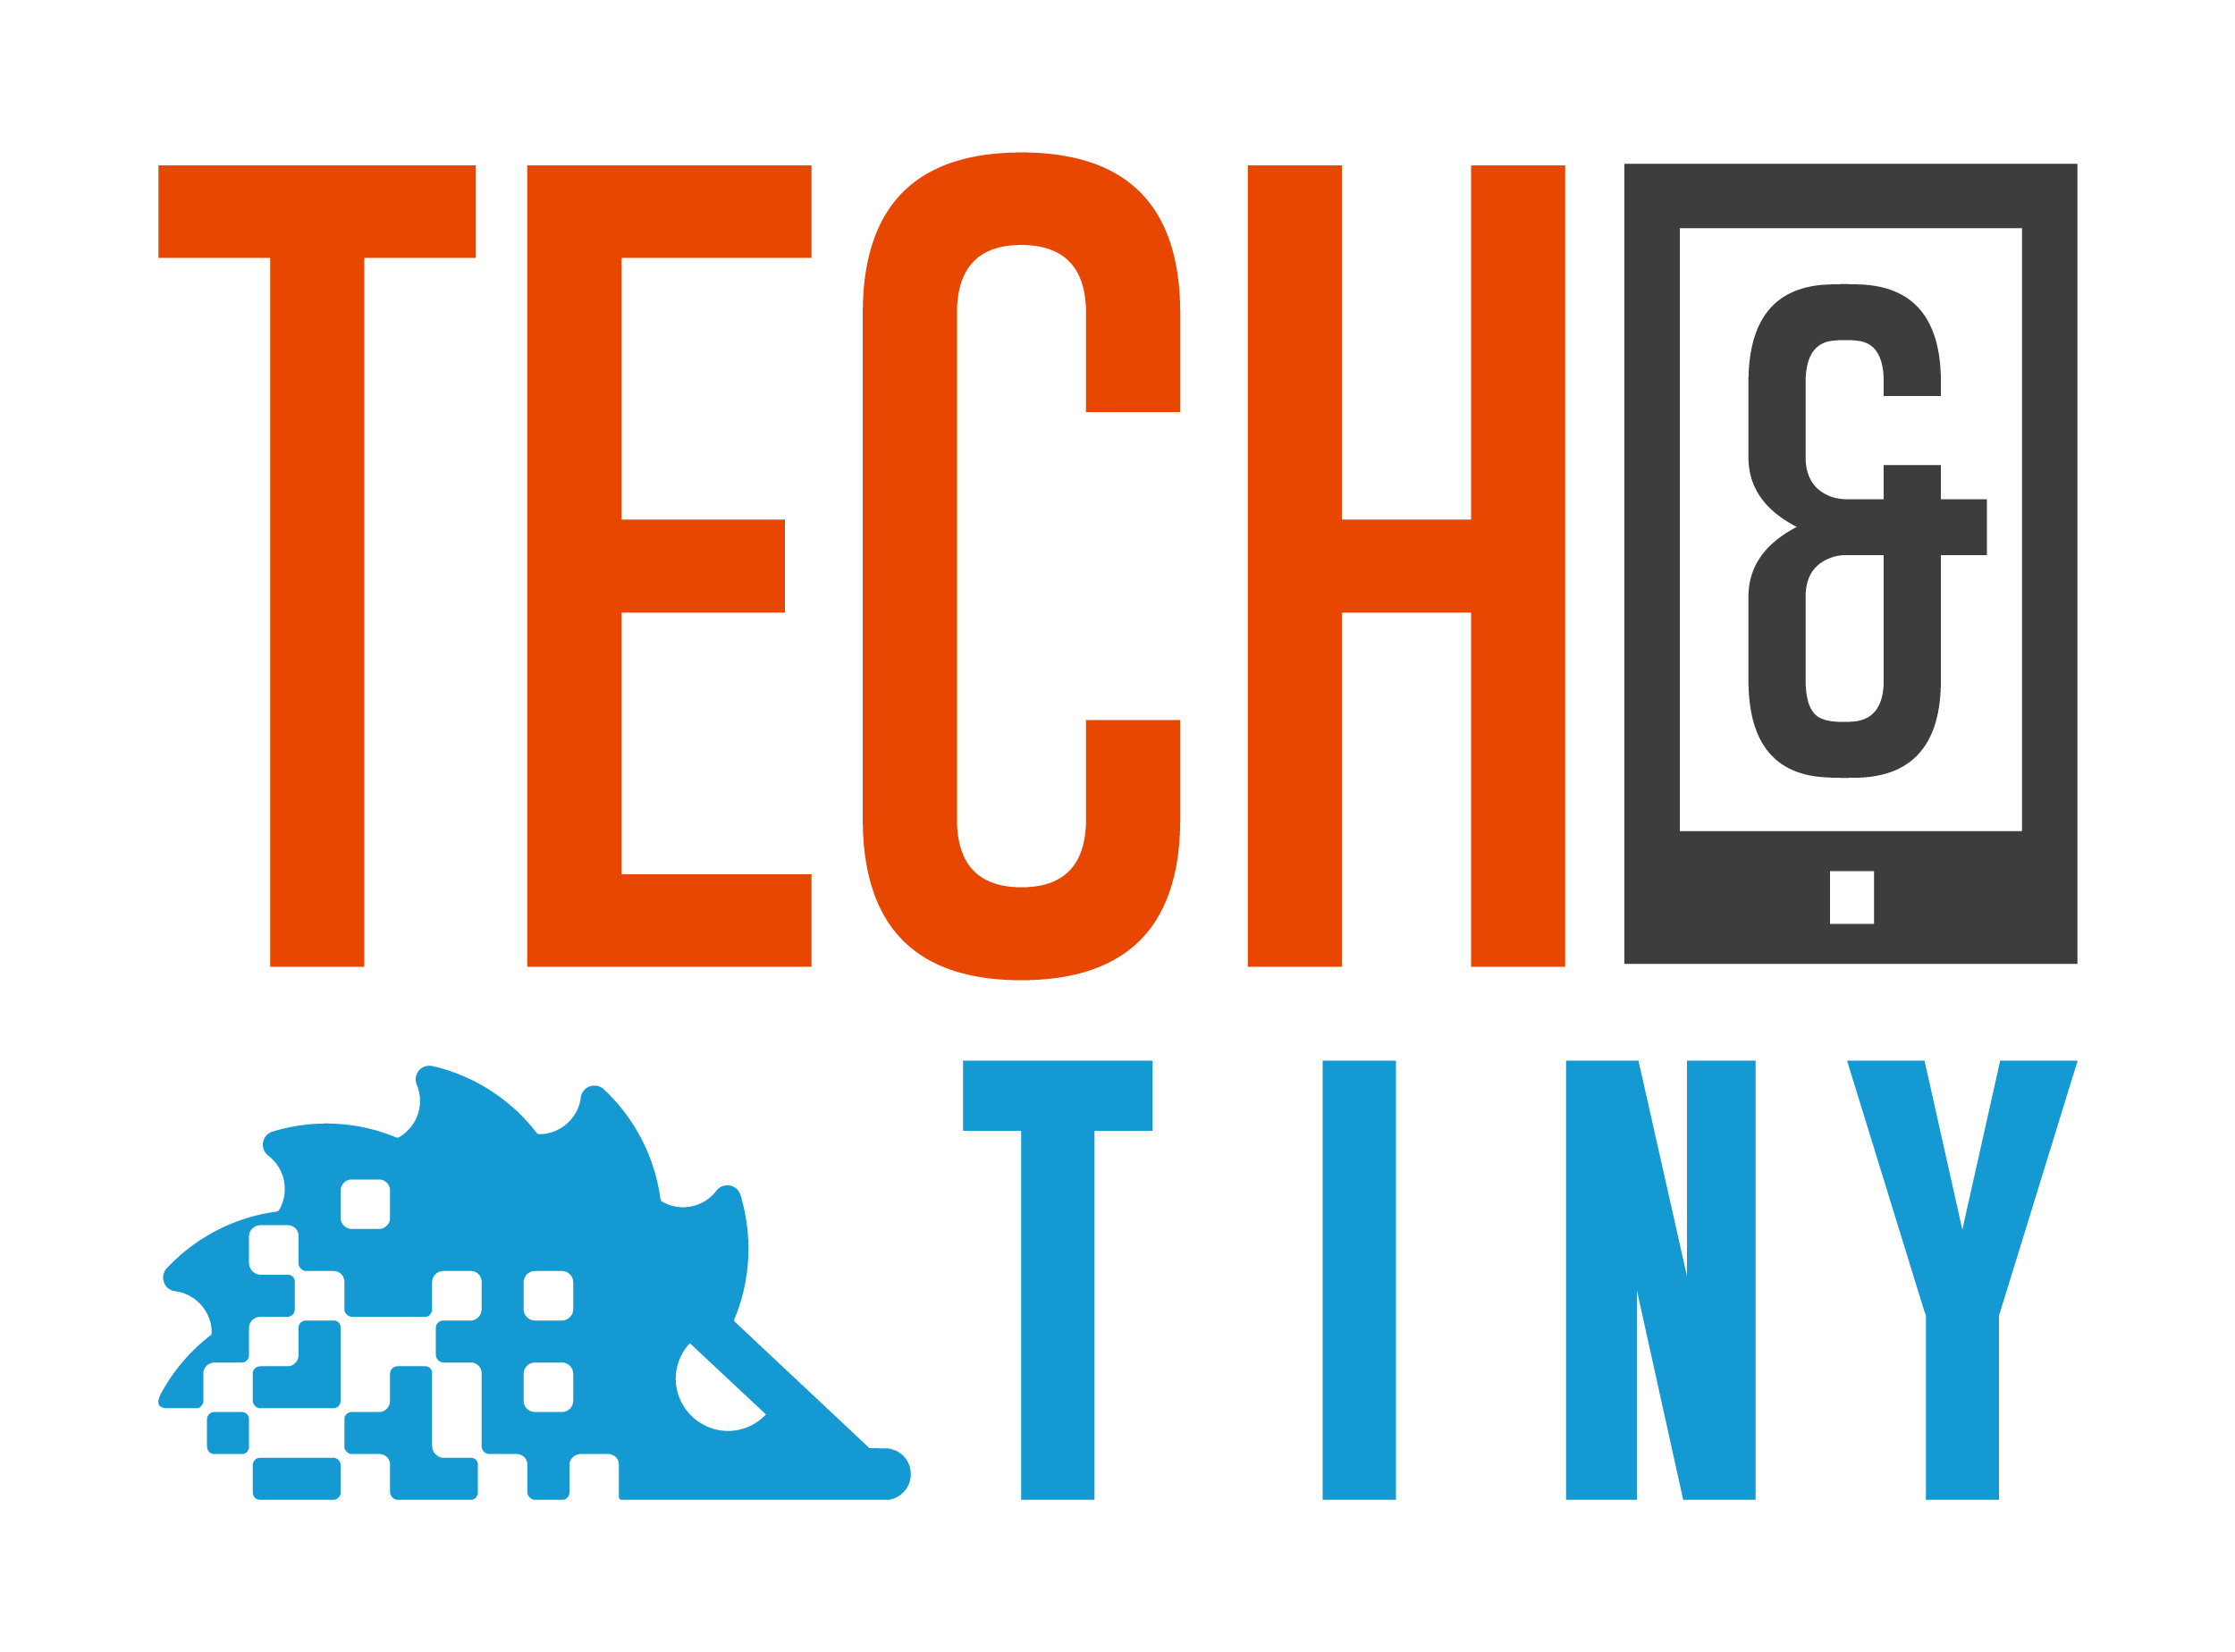 tech__tiny_logo_color_2_by_whitefoxdesigns-dd315j8